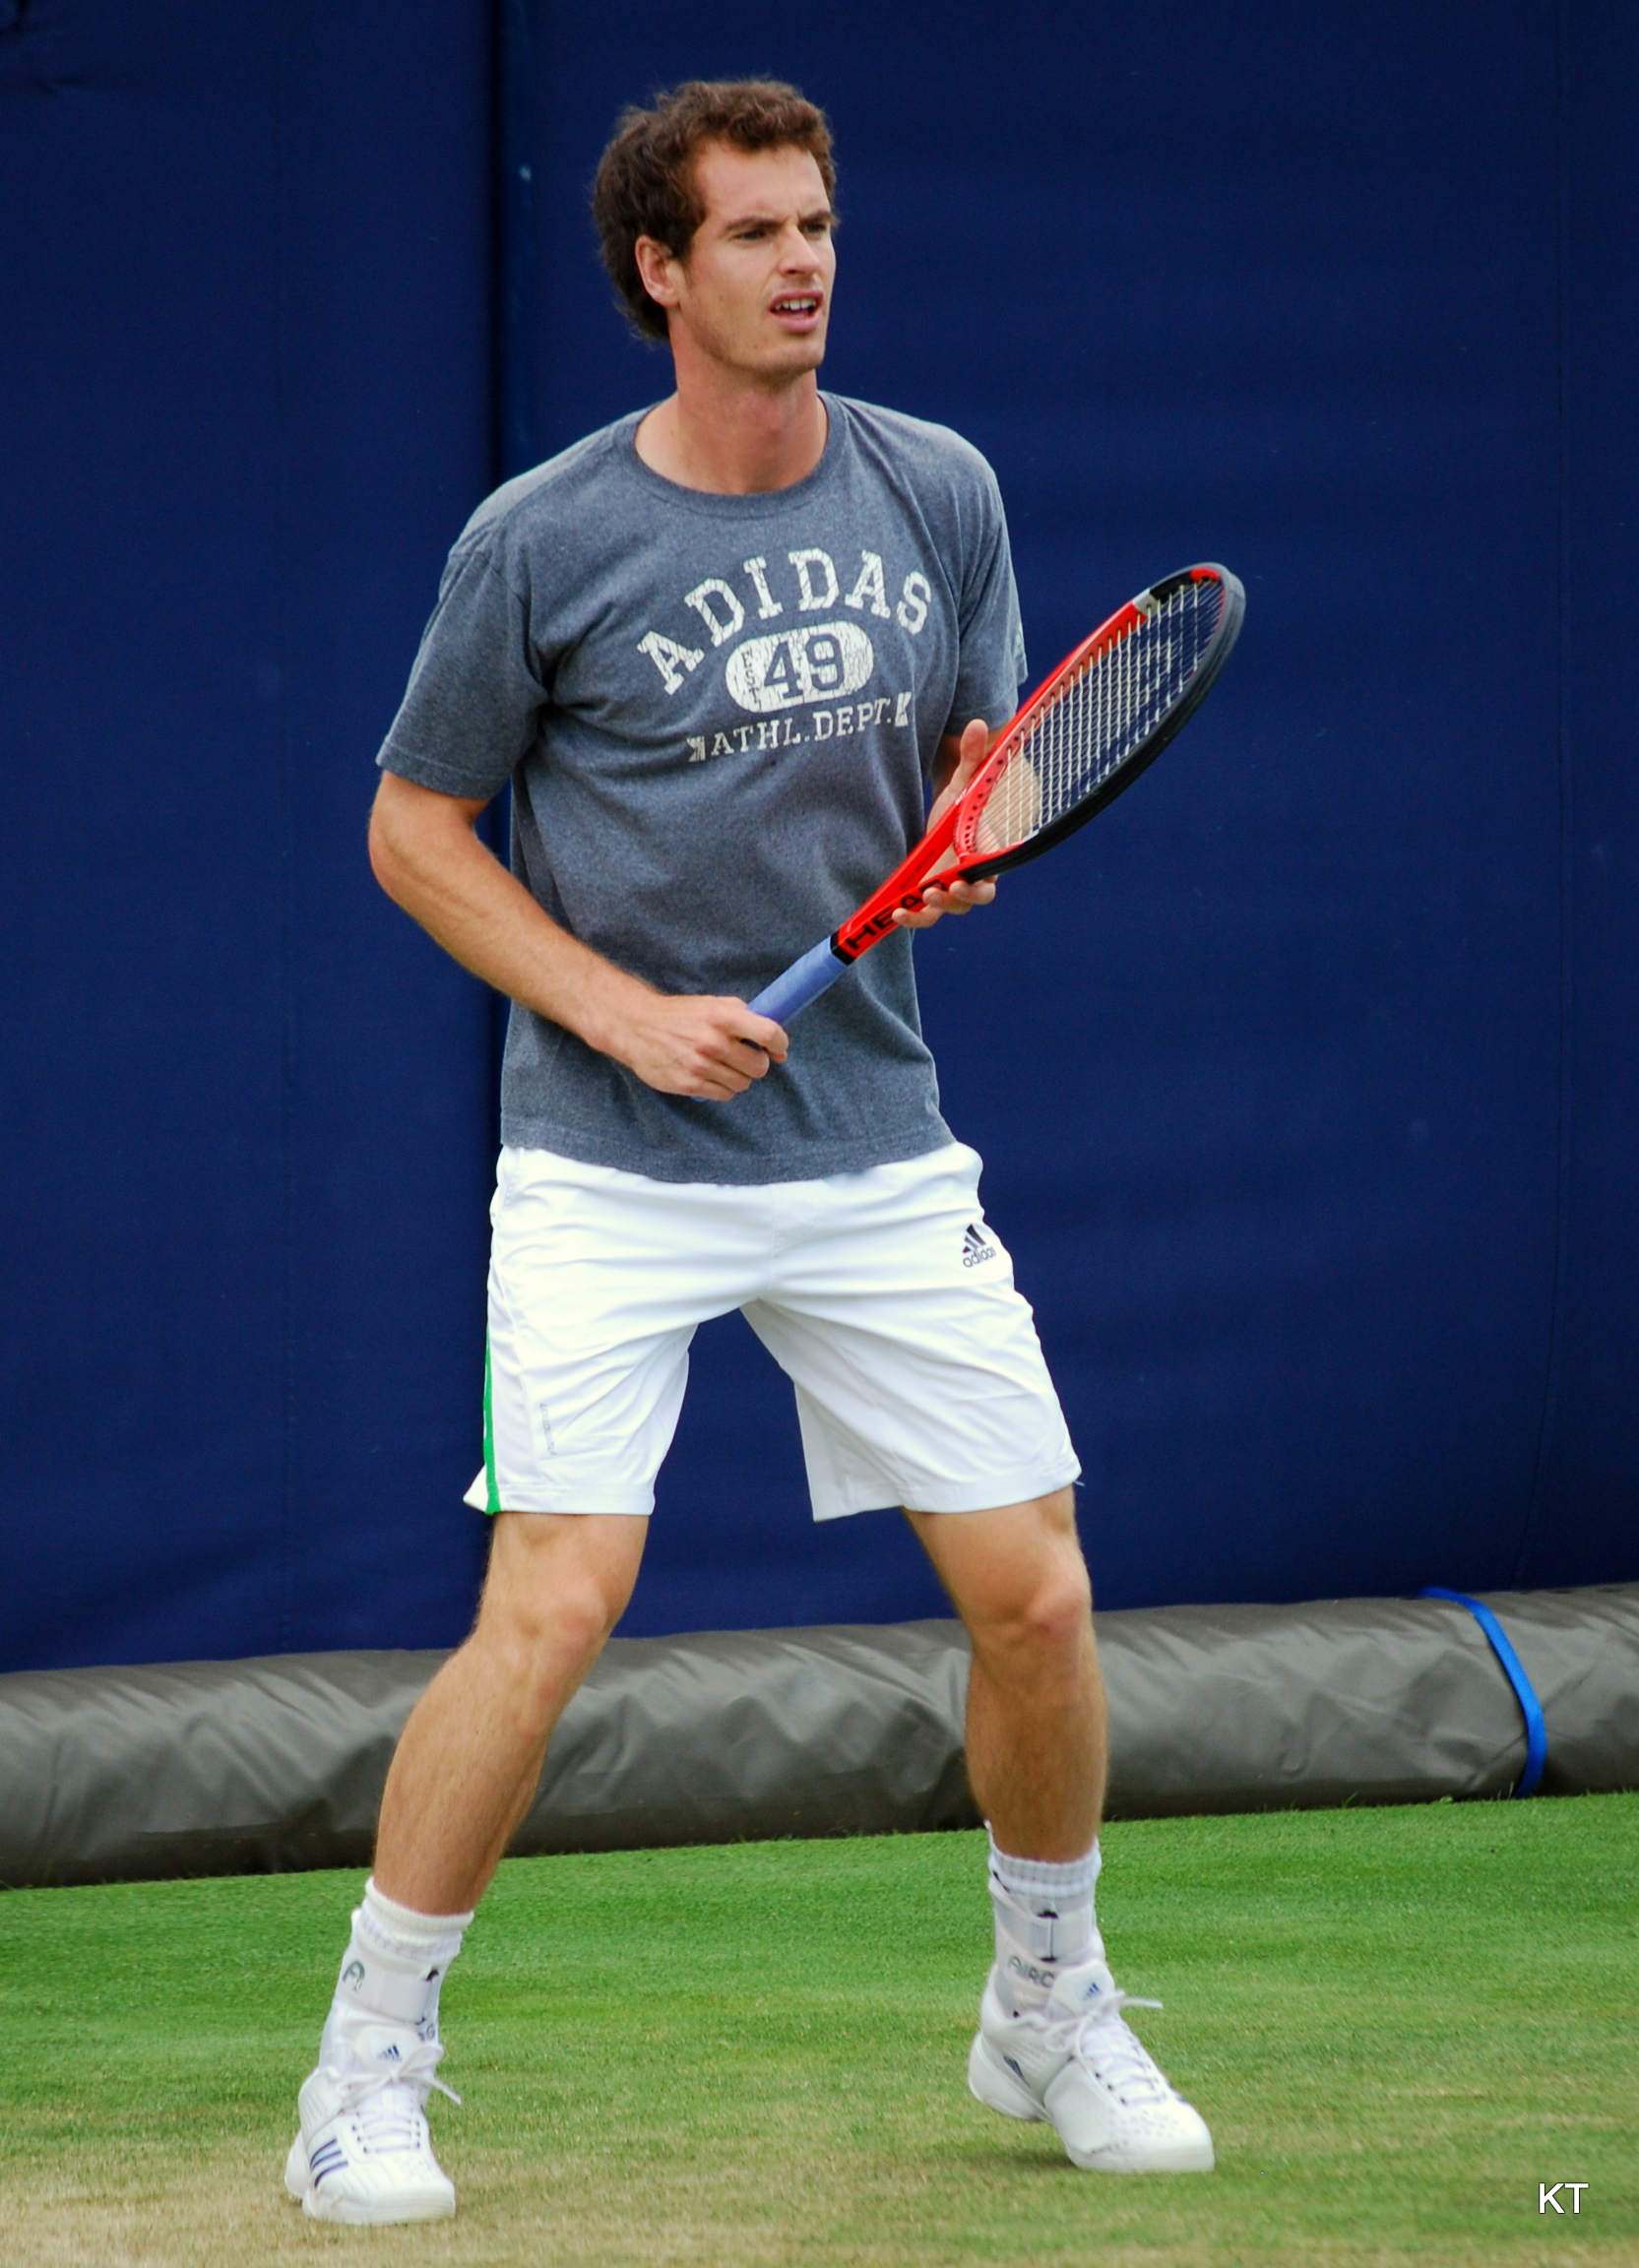 Andy Murray practicing tennis